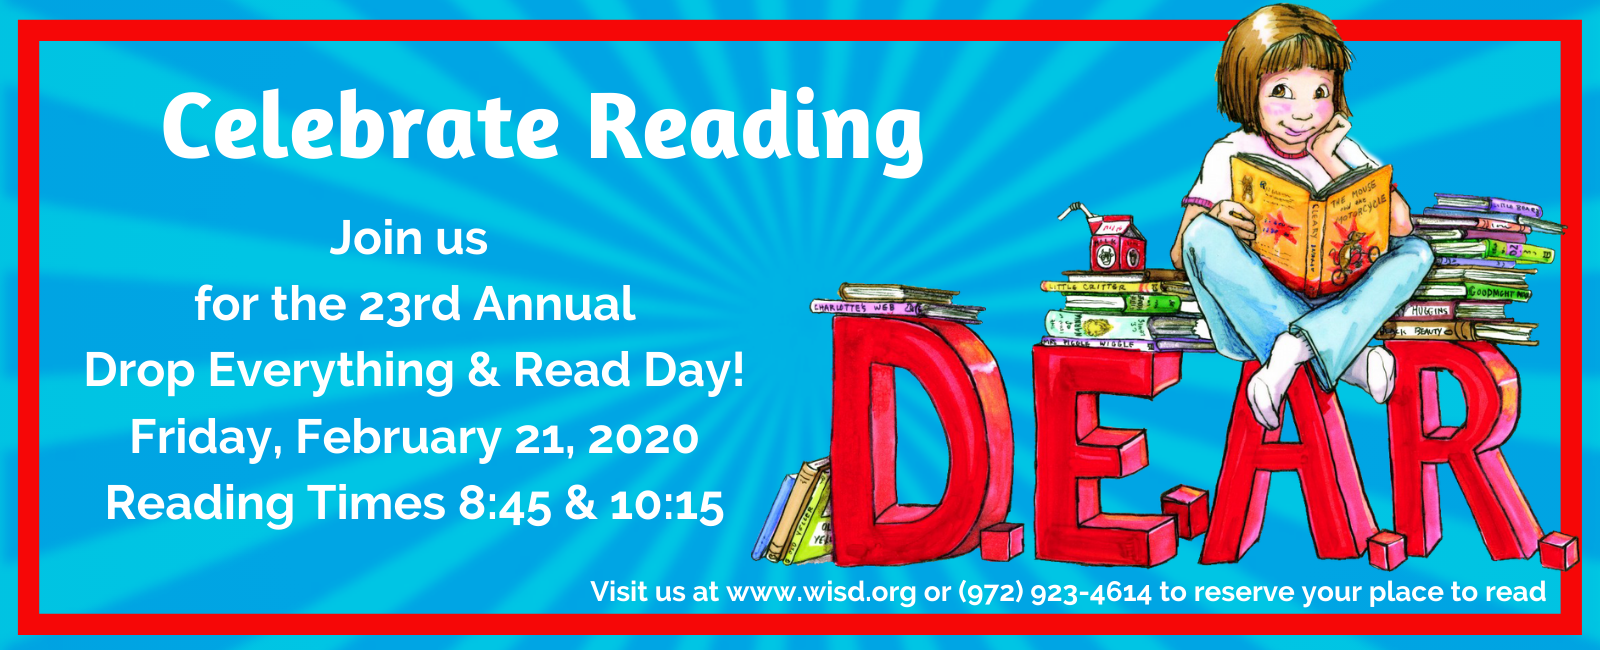 Celebrate Reading with Drop Everything and Read Day on February 21, 2020